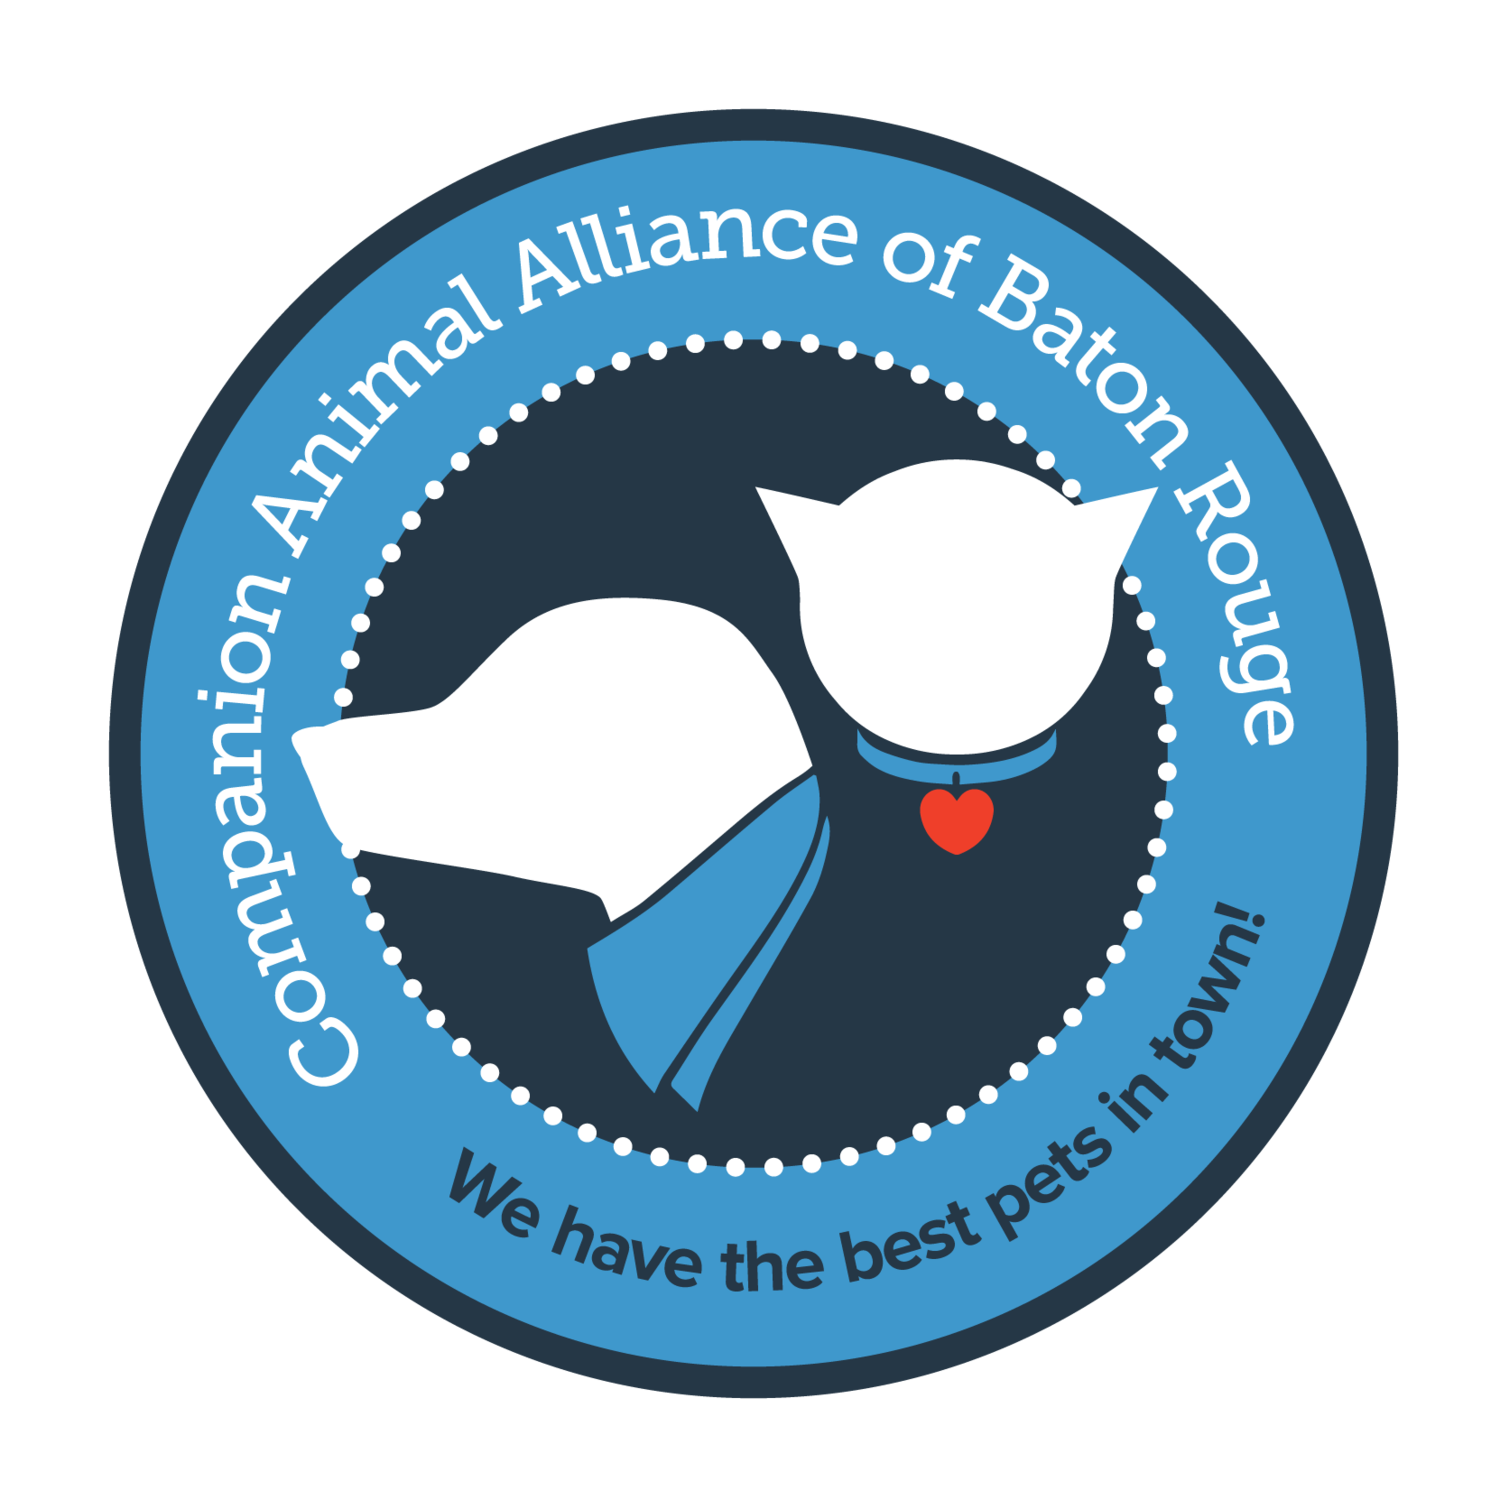 Companion Animal Alliance of BR logo